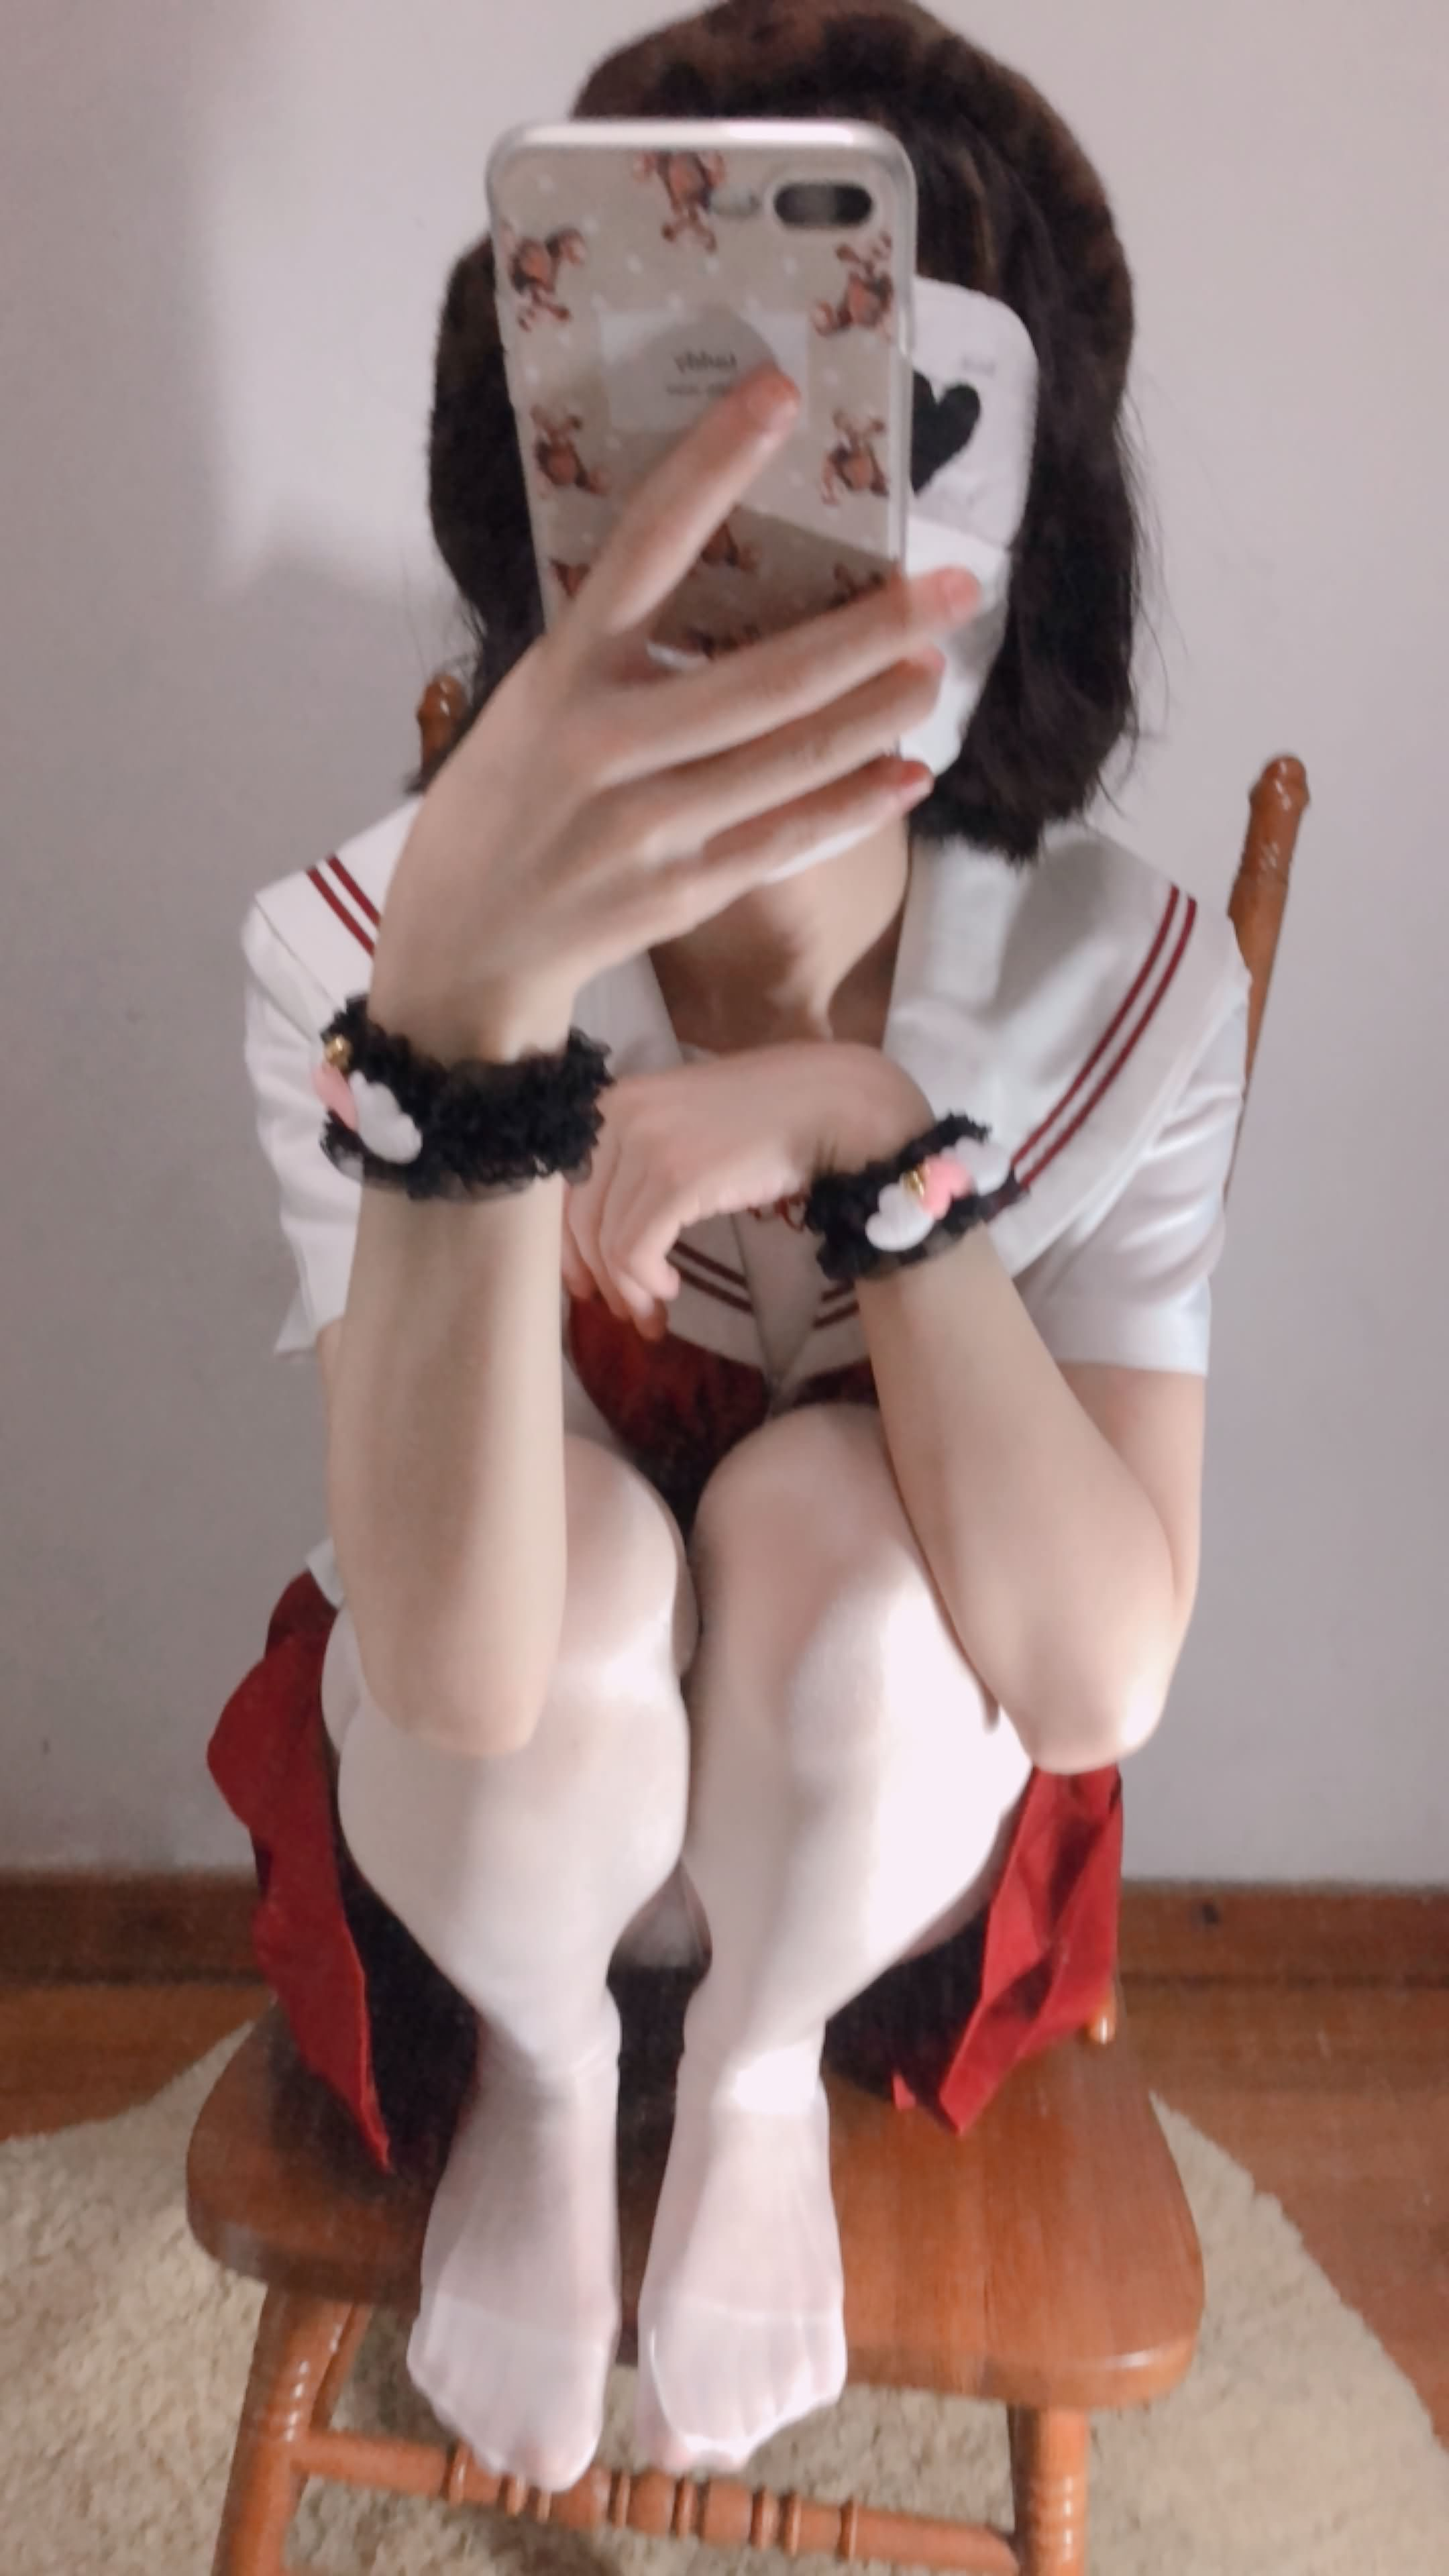 13 - Cosplay red JK uniform white stockings sweet pussy butt 小结巴-红色jk制服白丝 95P